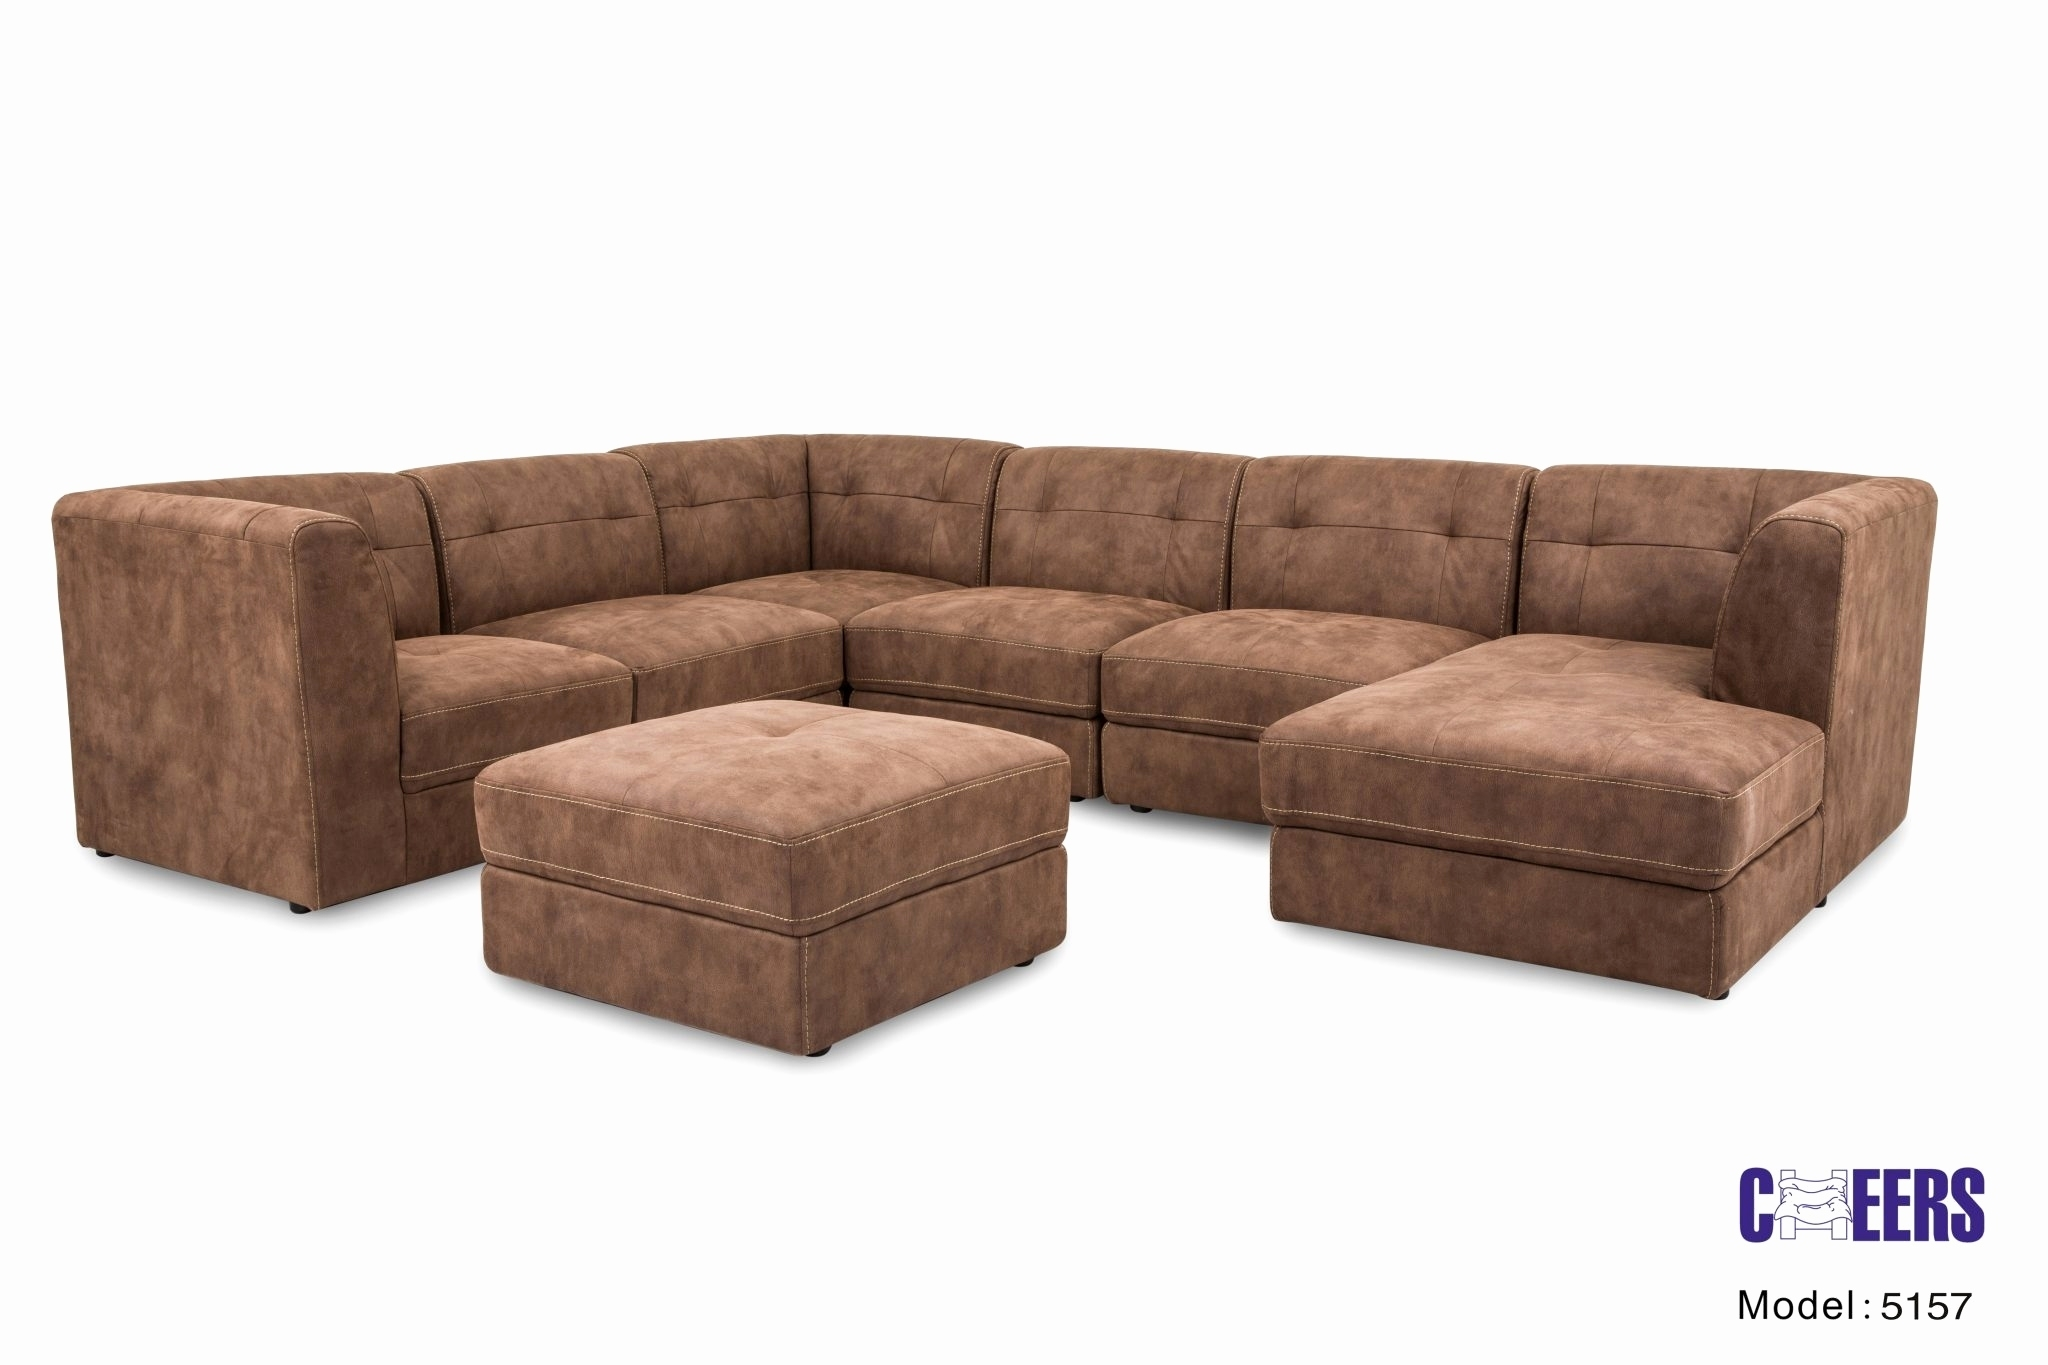 Luxury 6 Piece Sectional Sofa 2018 – Couches Ideas Inside Sam Levitz Sectional Sofas (View 3 of 10)